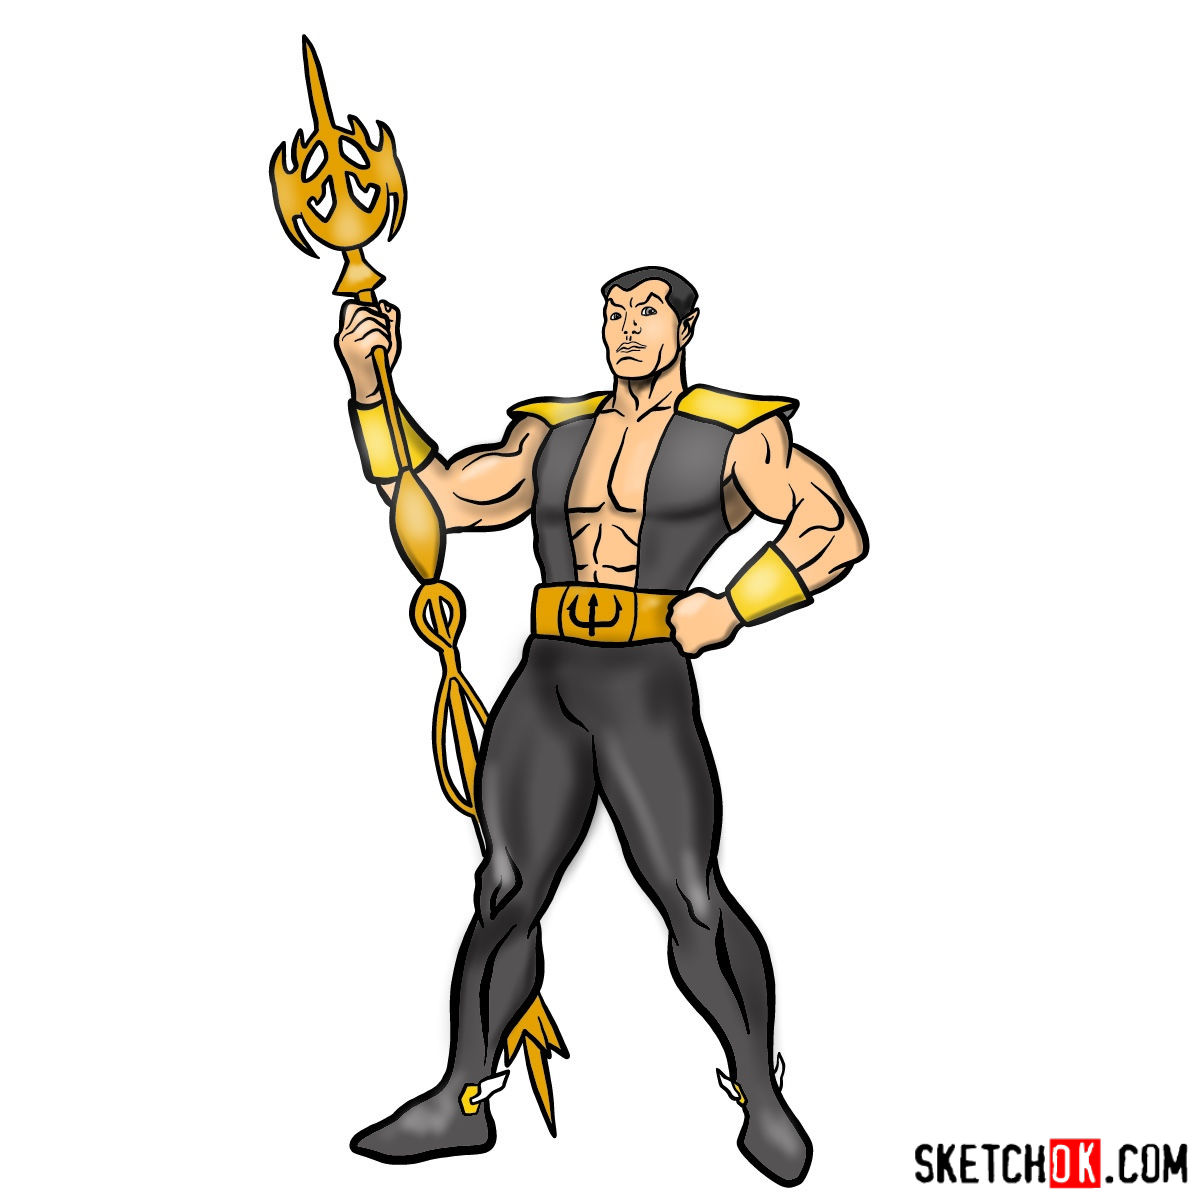 How to draw Namor the Sub-Mariner from Marvel Comics